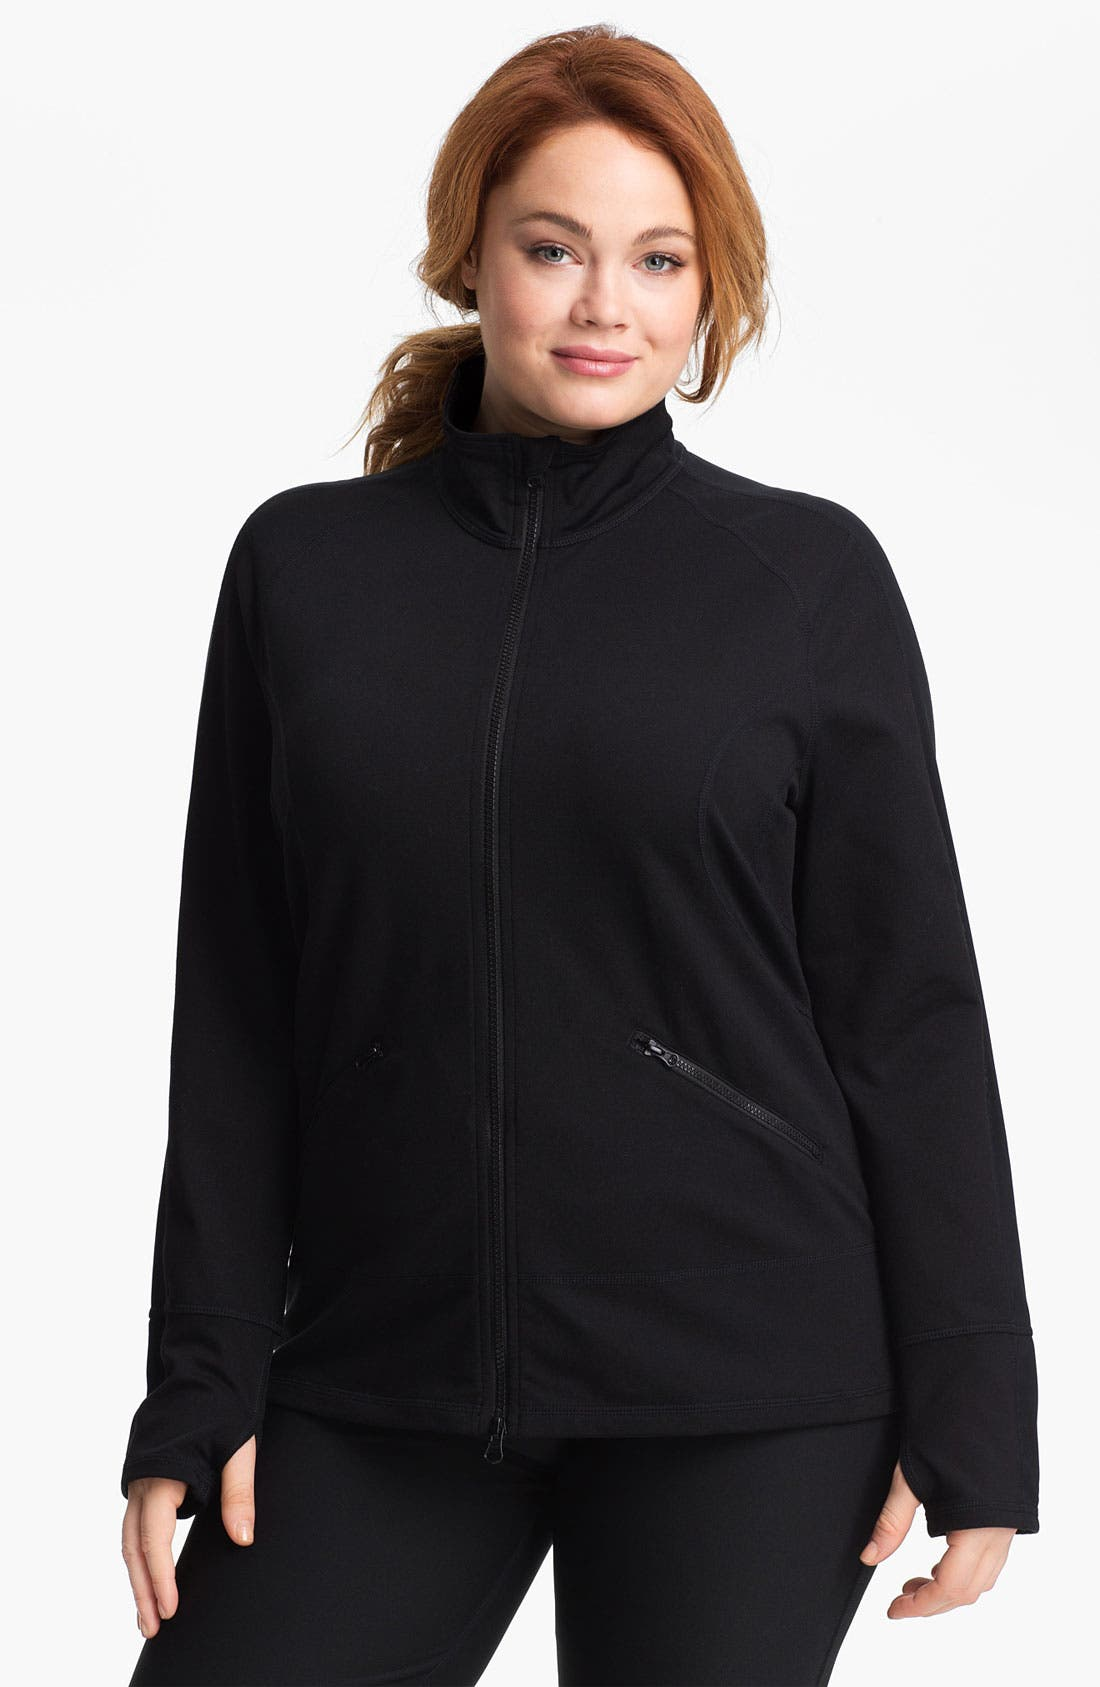 Main Image - Zella 'Streamline' Jacket (Plus Size)